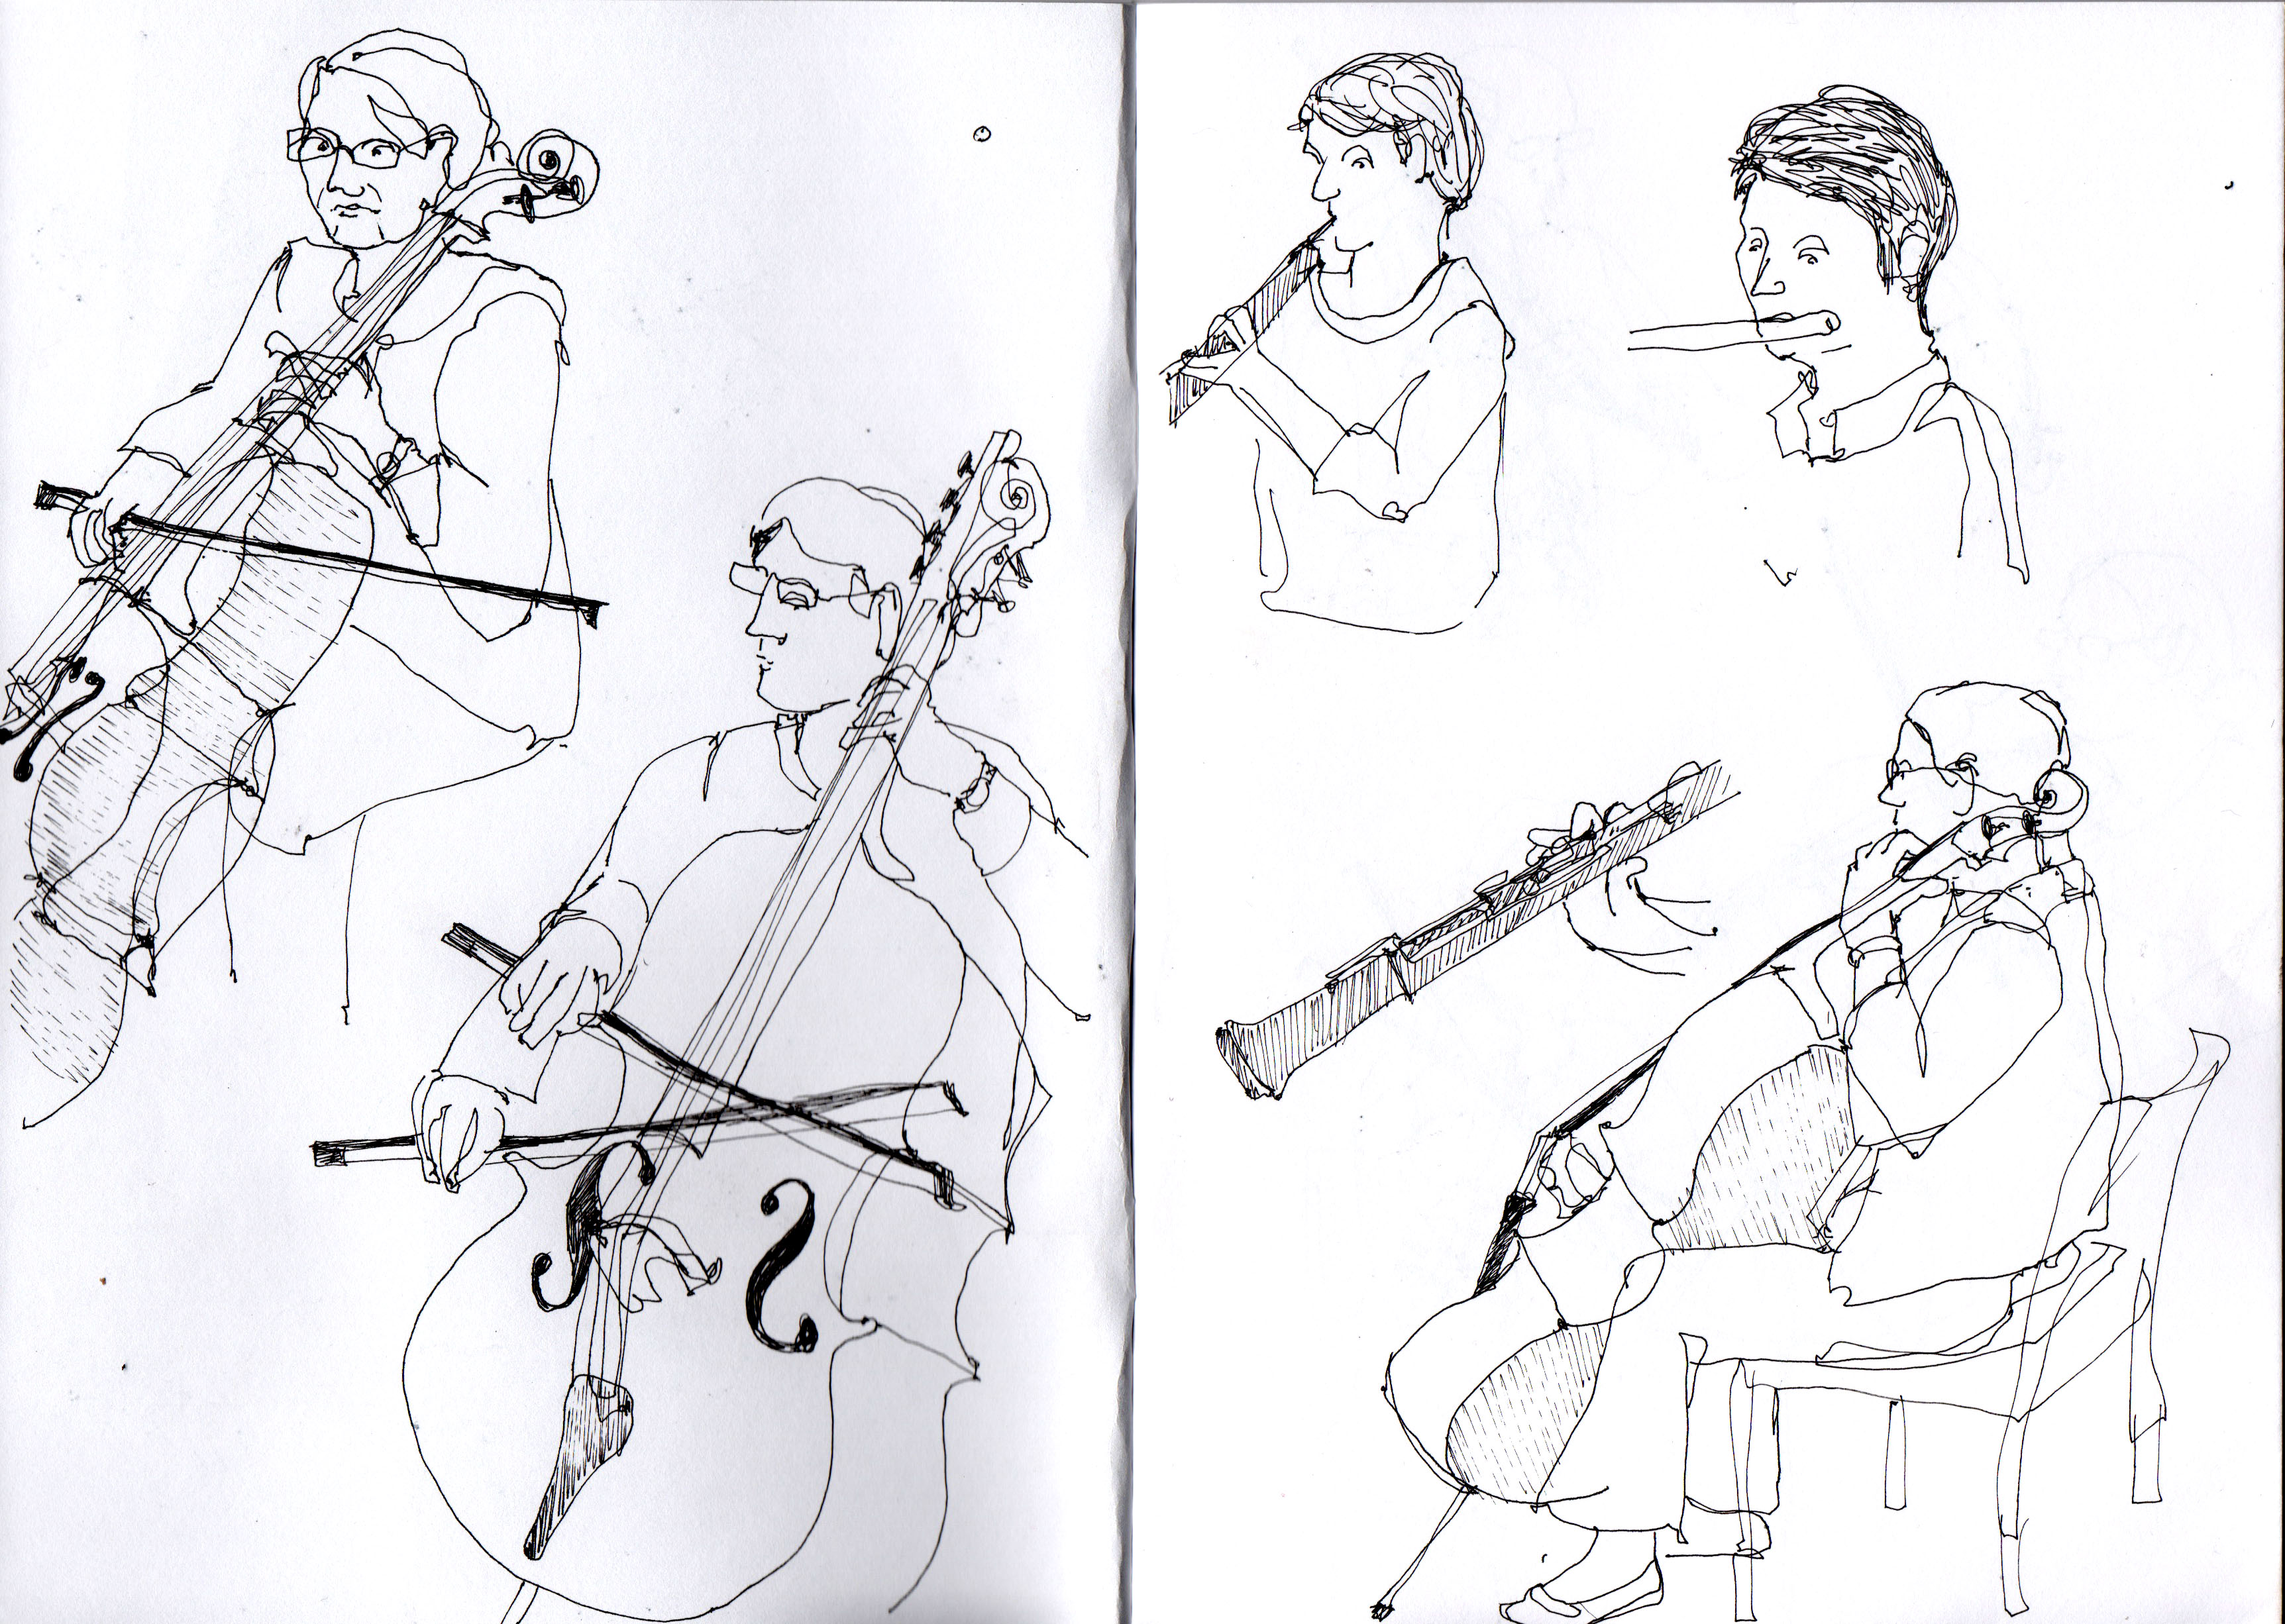 Drawn violinist line drawing Where movements Harriet the really